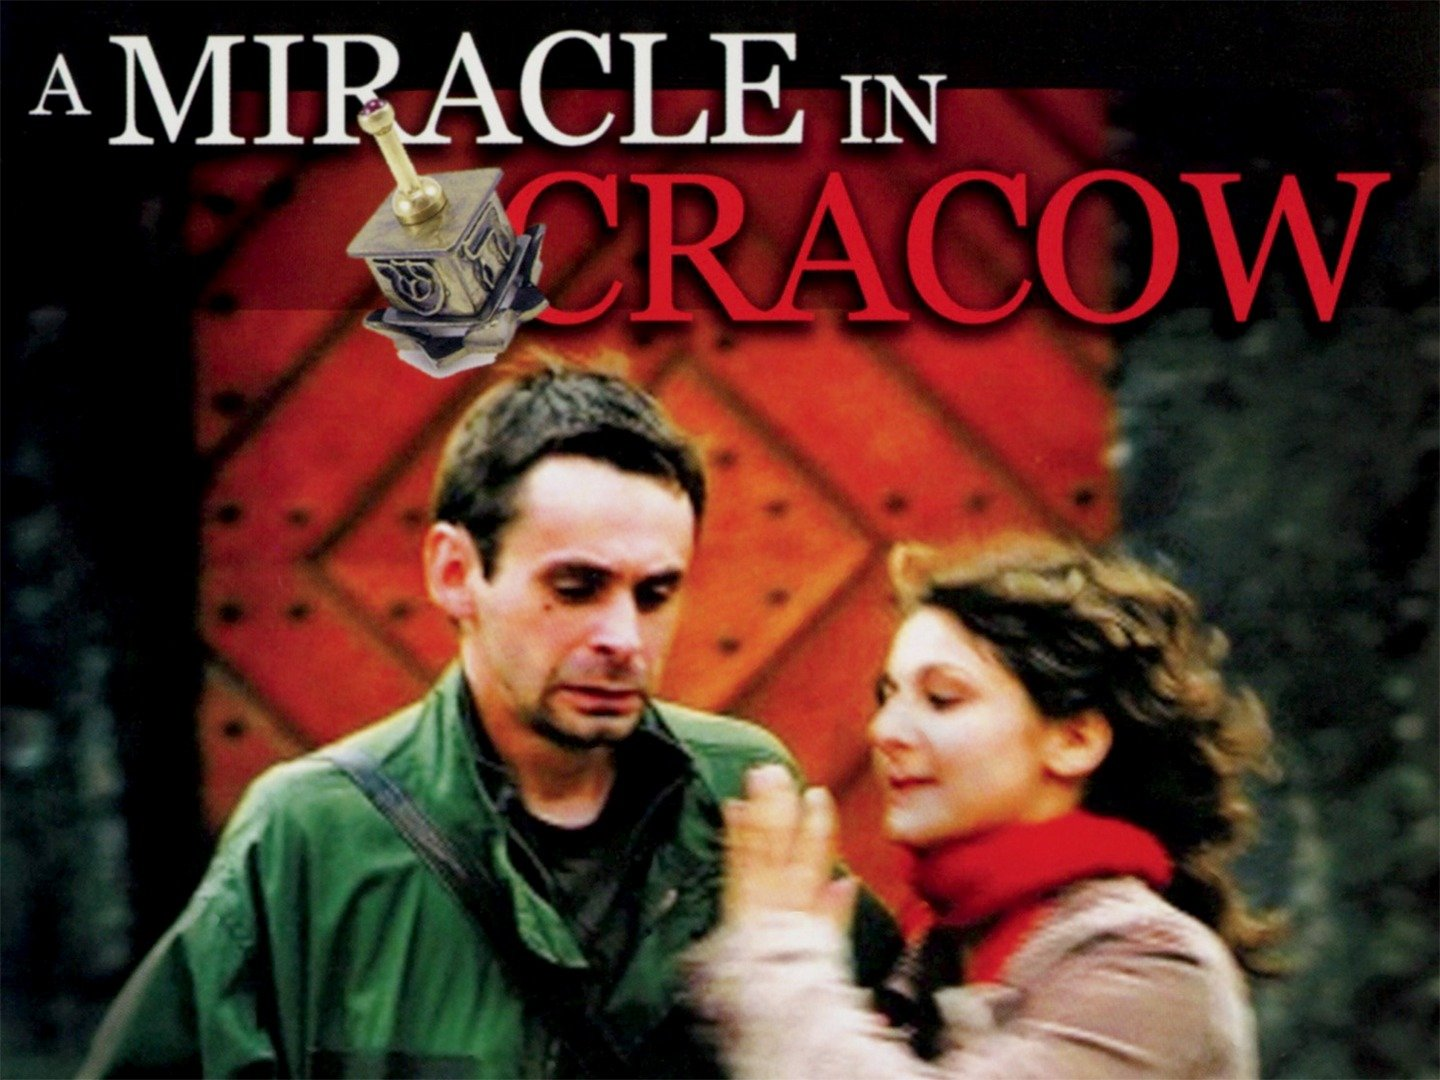 Miracle in Cracow